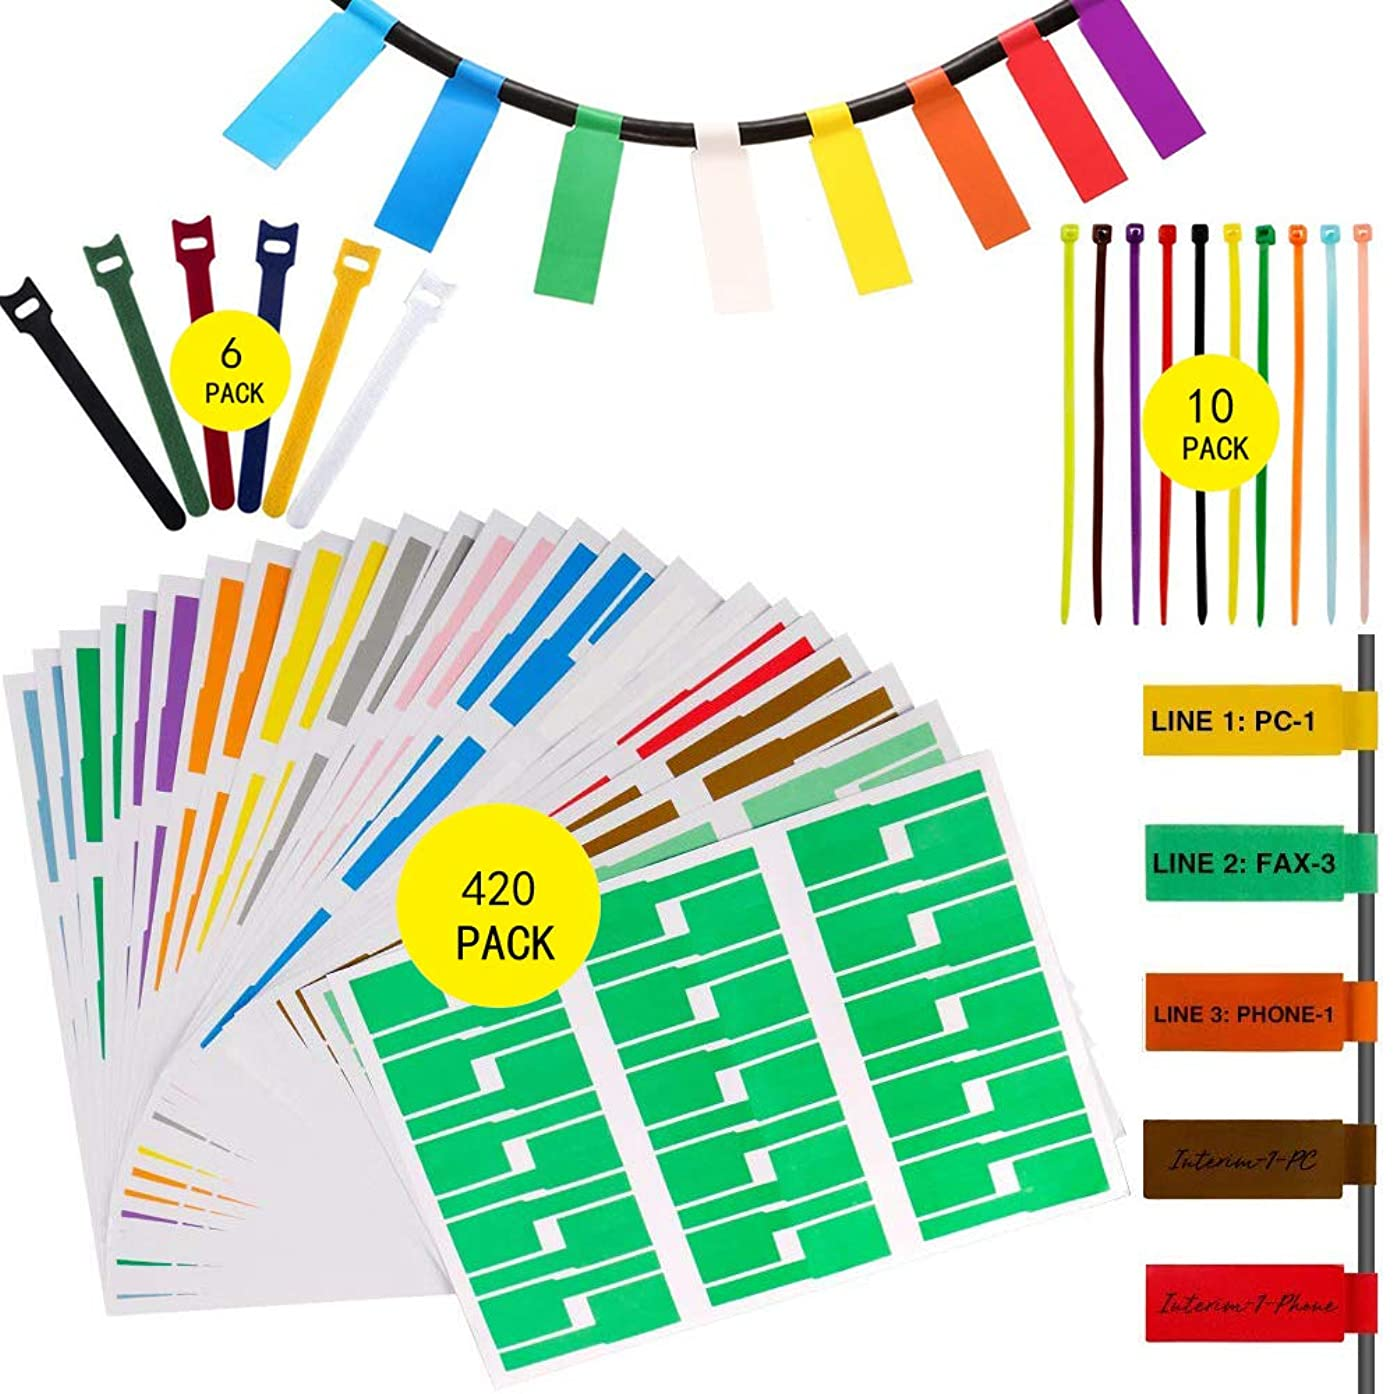 420 Pcs Cable Tags Cable Labels Stickers Waterproof Cable Markers Printable and Handwriting Cable Organizer, 6 Pieces Reusable Hook and Loop Cord Straps and 10 Nylon Wire Straps